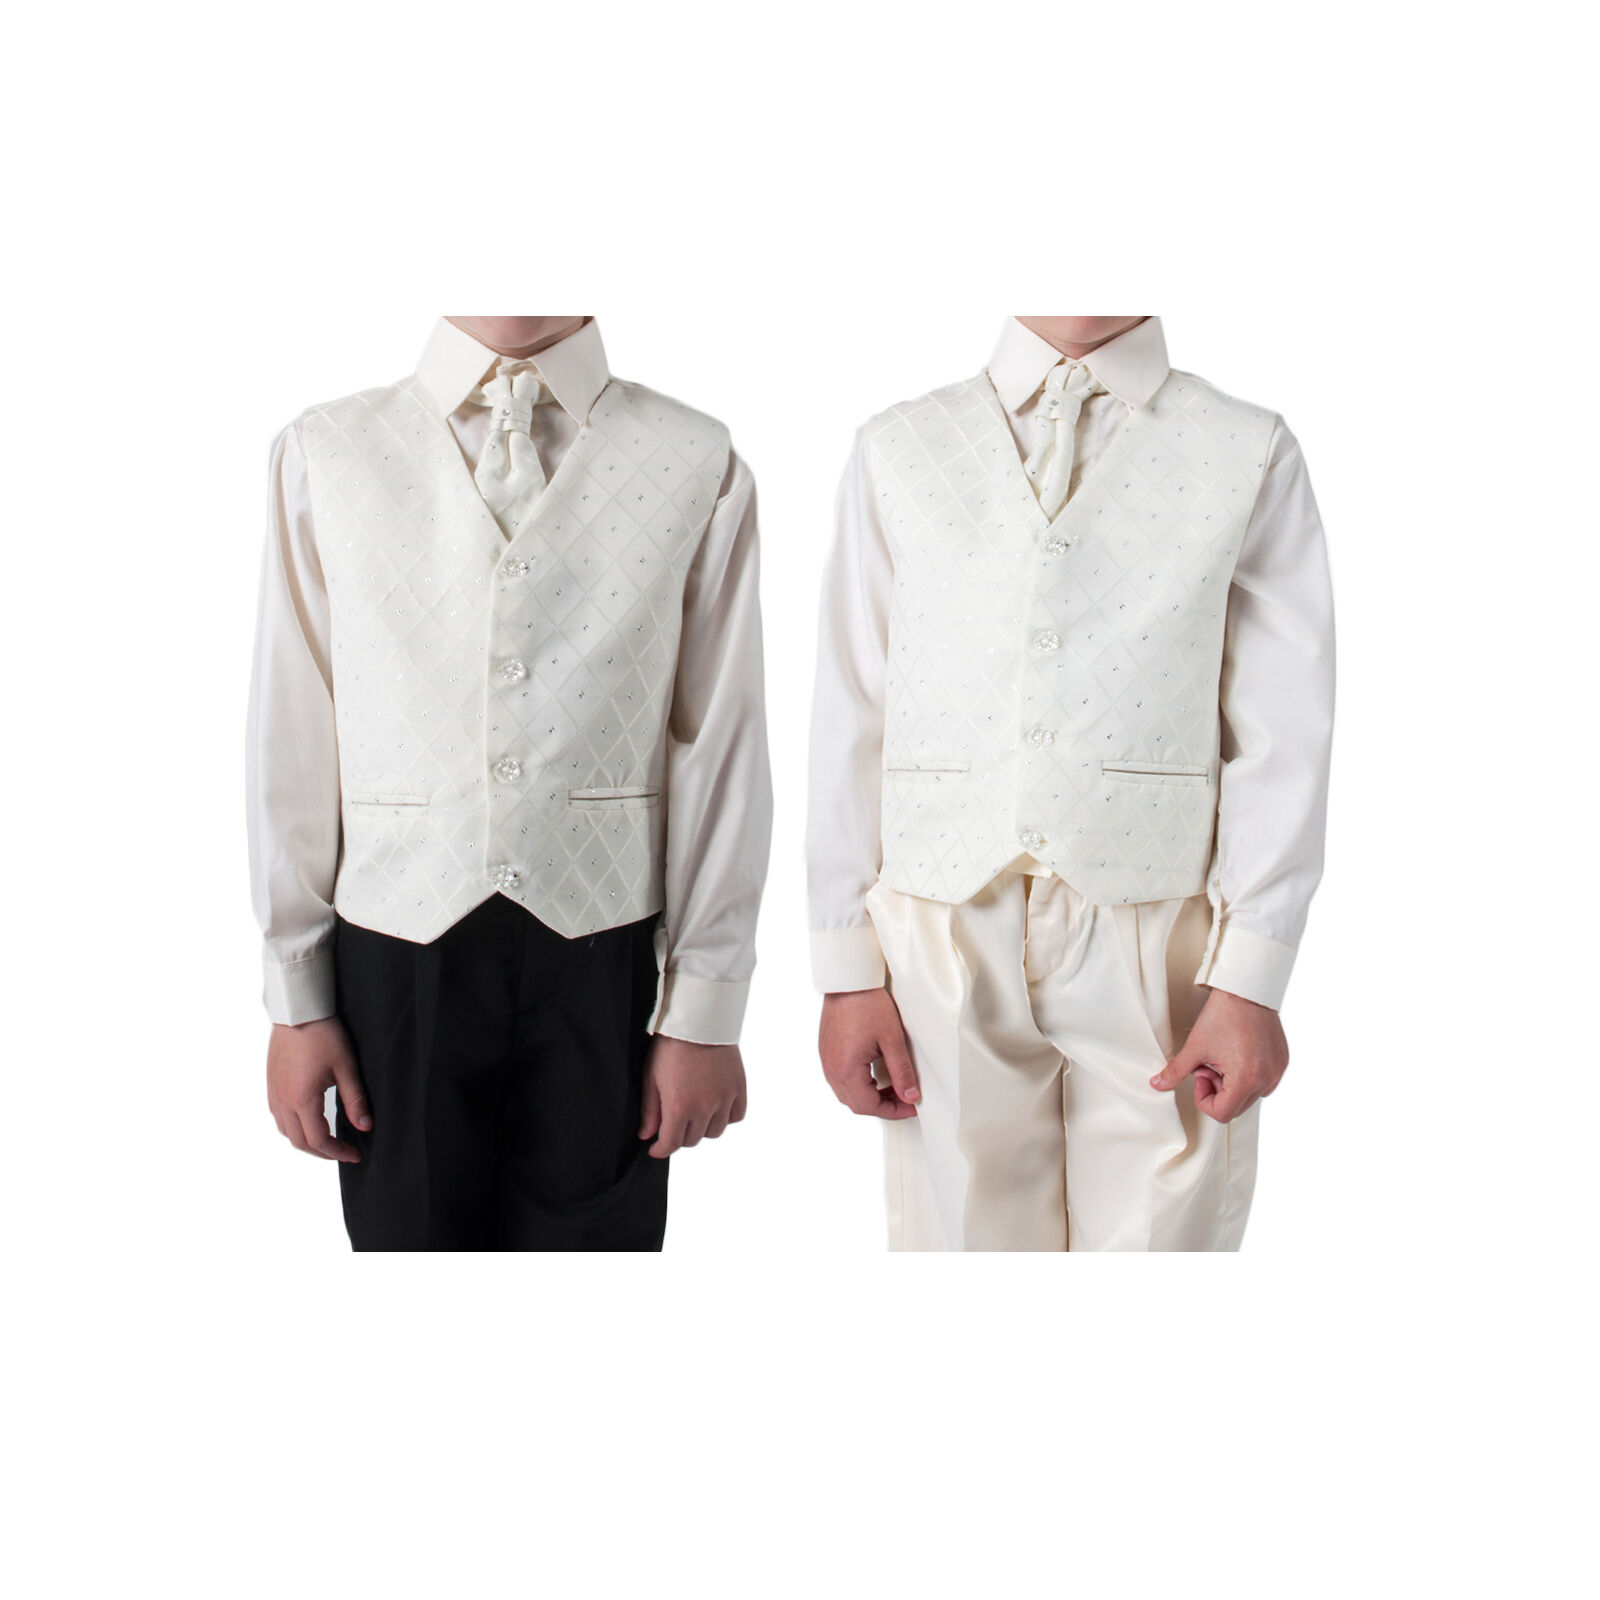 Boys Suits Cream 4 Piece Waistcoat Suit Wedding Pageboy Christening Outfit